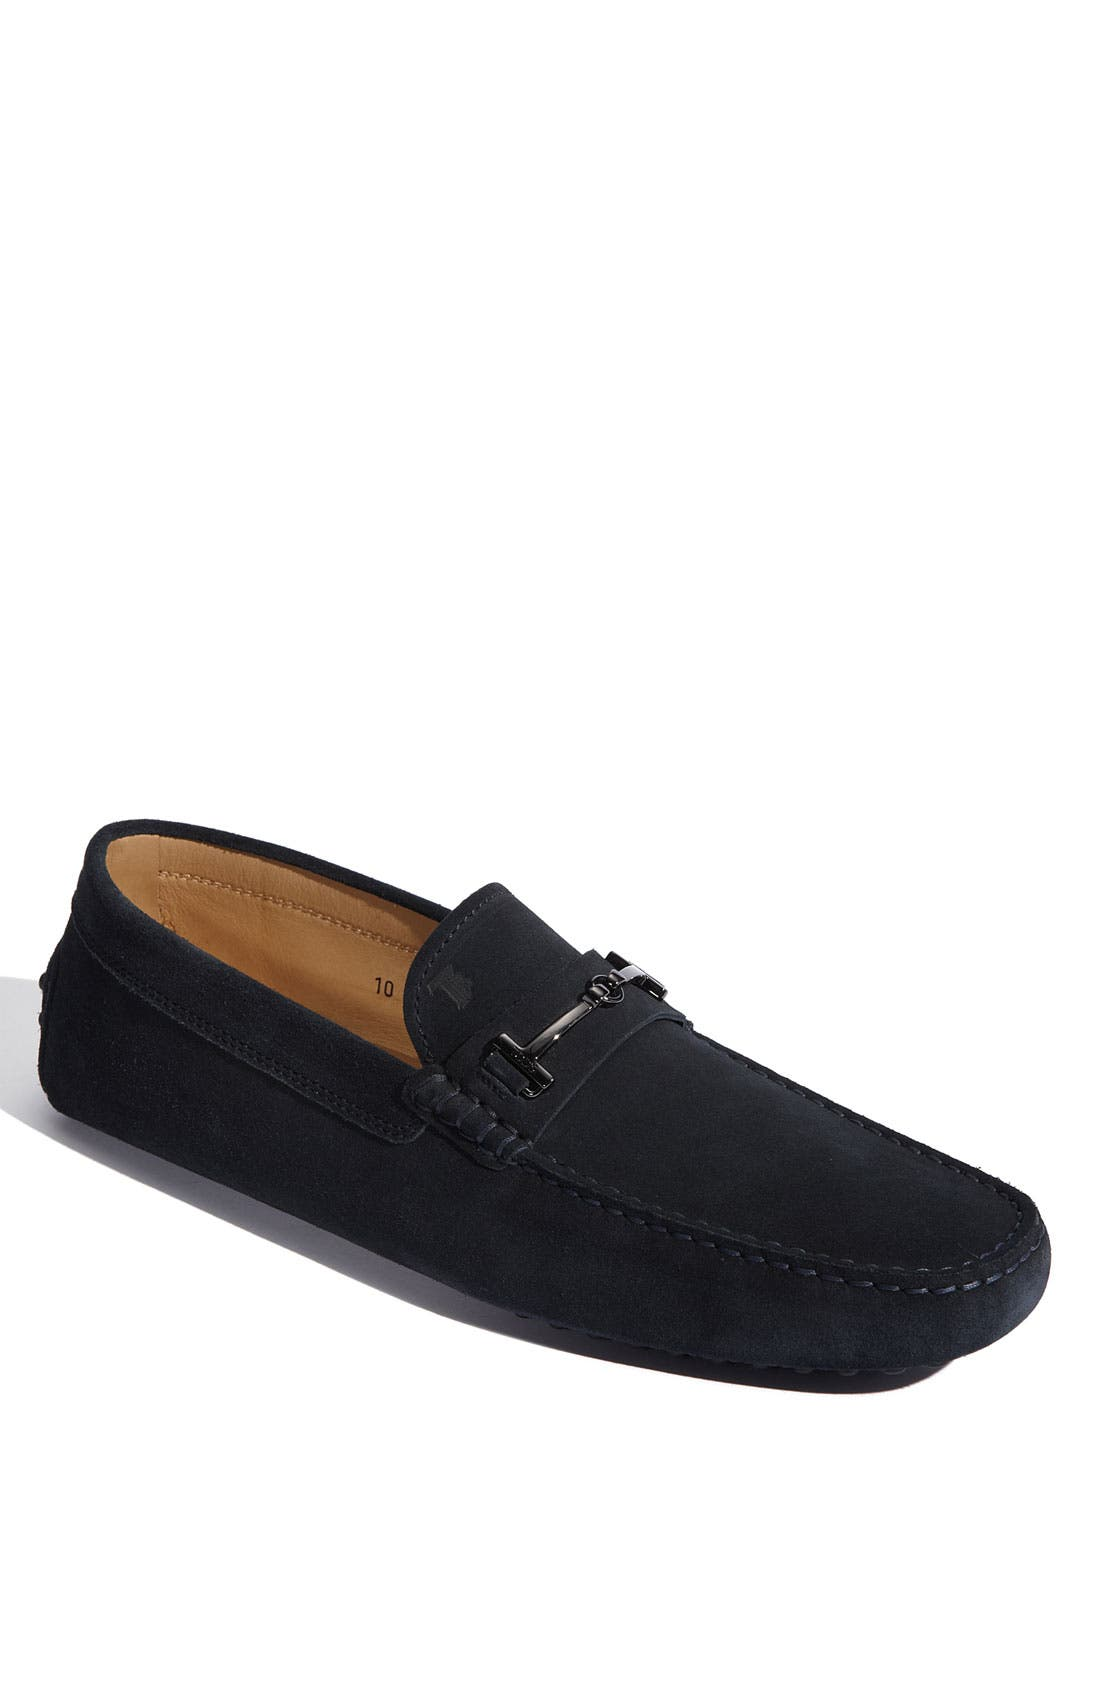 Alternate Image 1 Selected - Tod's 'Double T' Driving Shoe